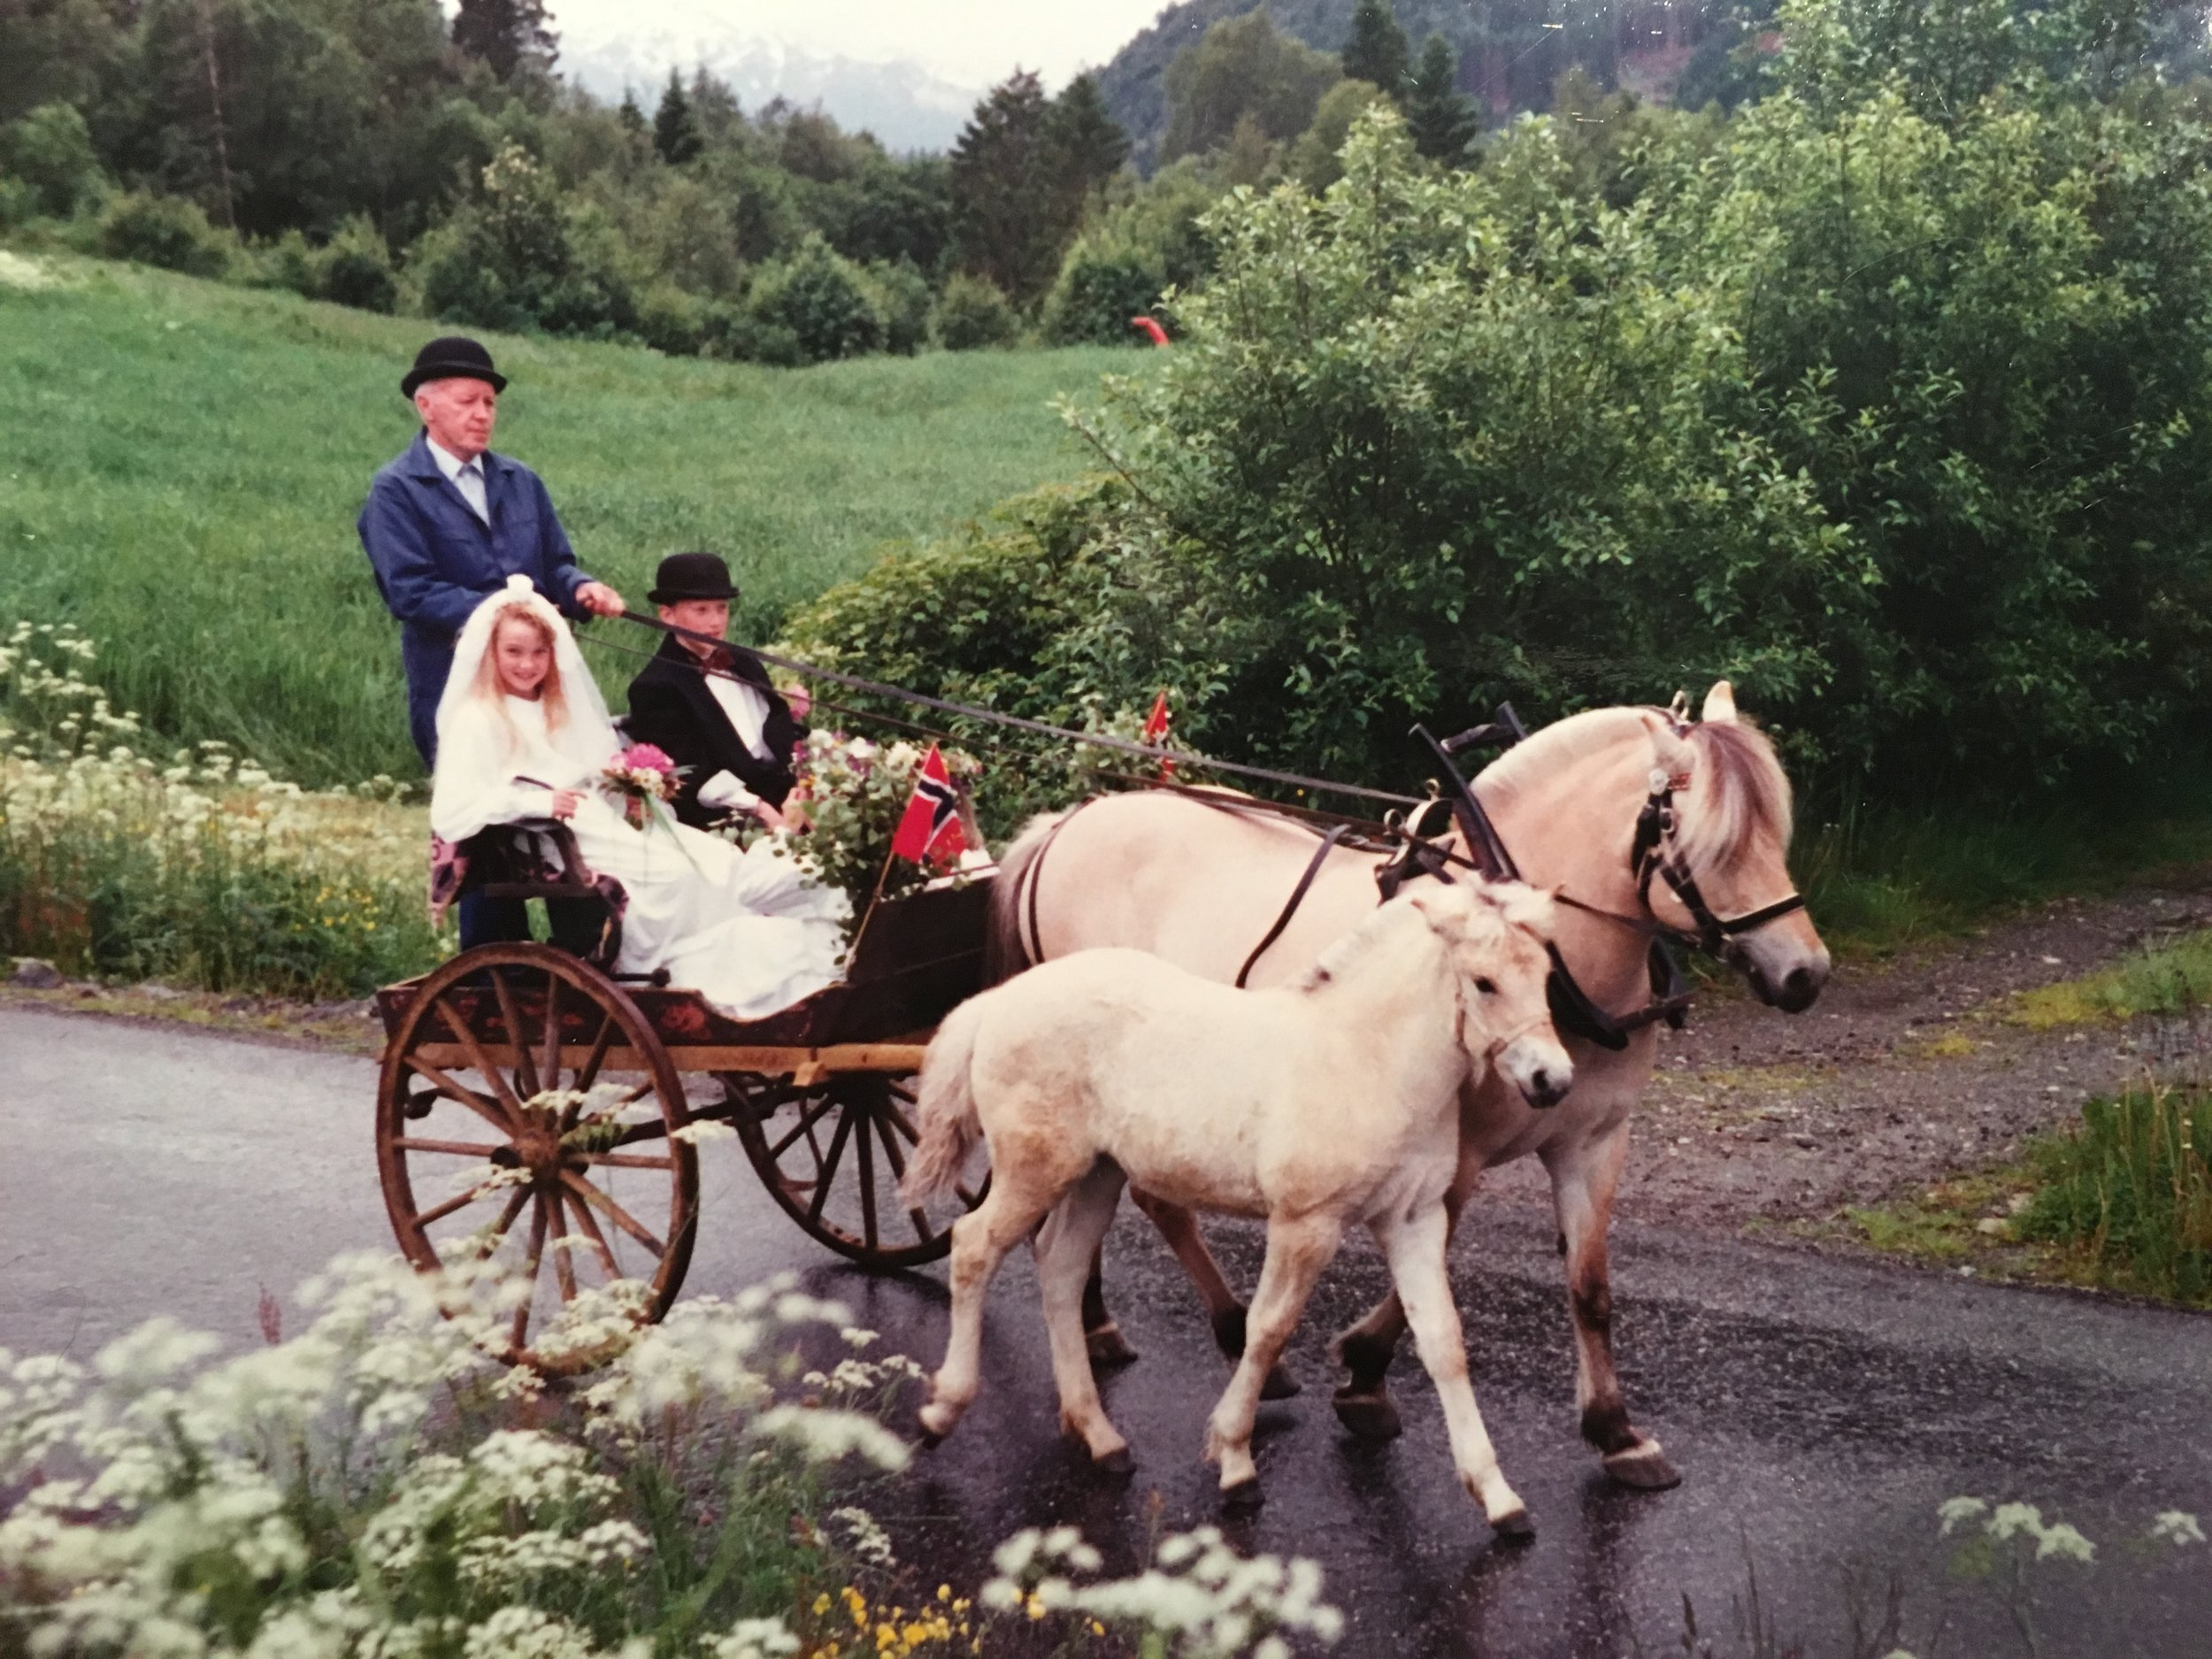 Me and next door neighbor Jenny as mid summer-newlyweds. Grandpa and his horses carrying us around.